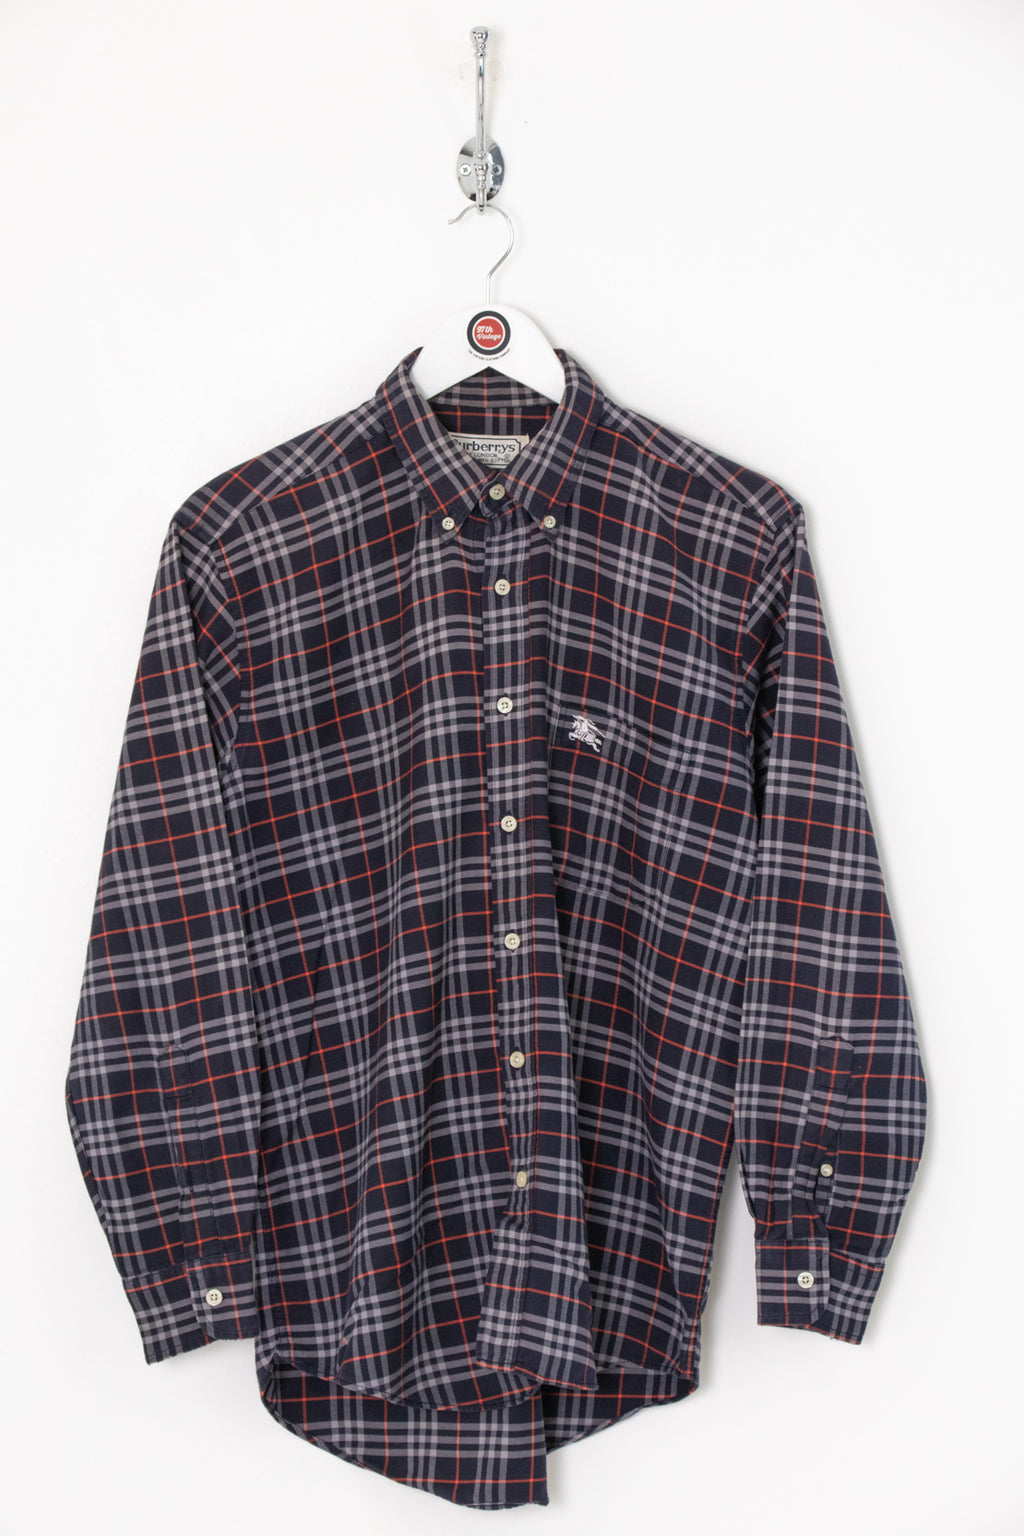 Burberry Shirt (M)